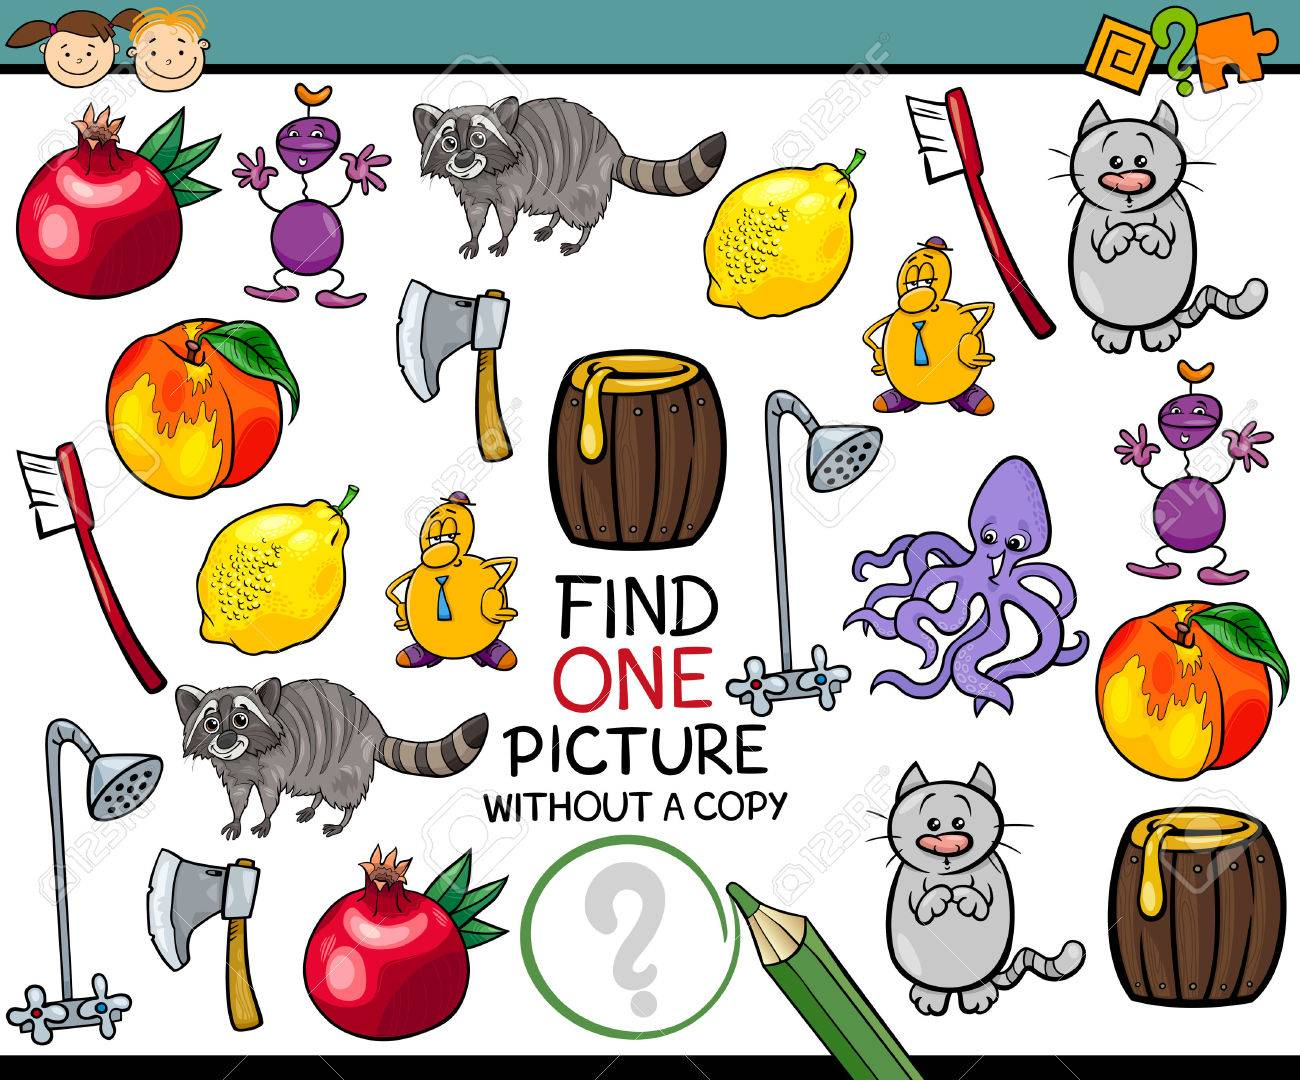 Cartoon Illustration of Finding Single Picture without a Pair Educational Game for Preschool Children - 40902607